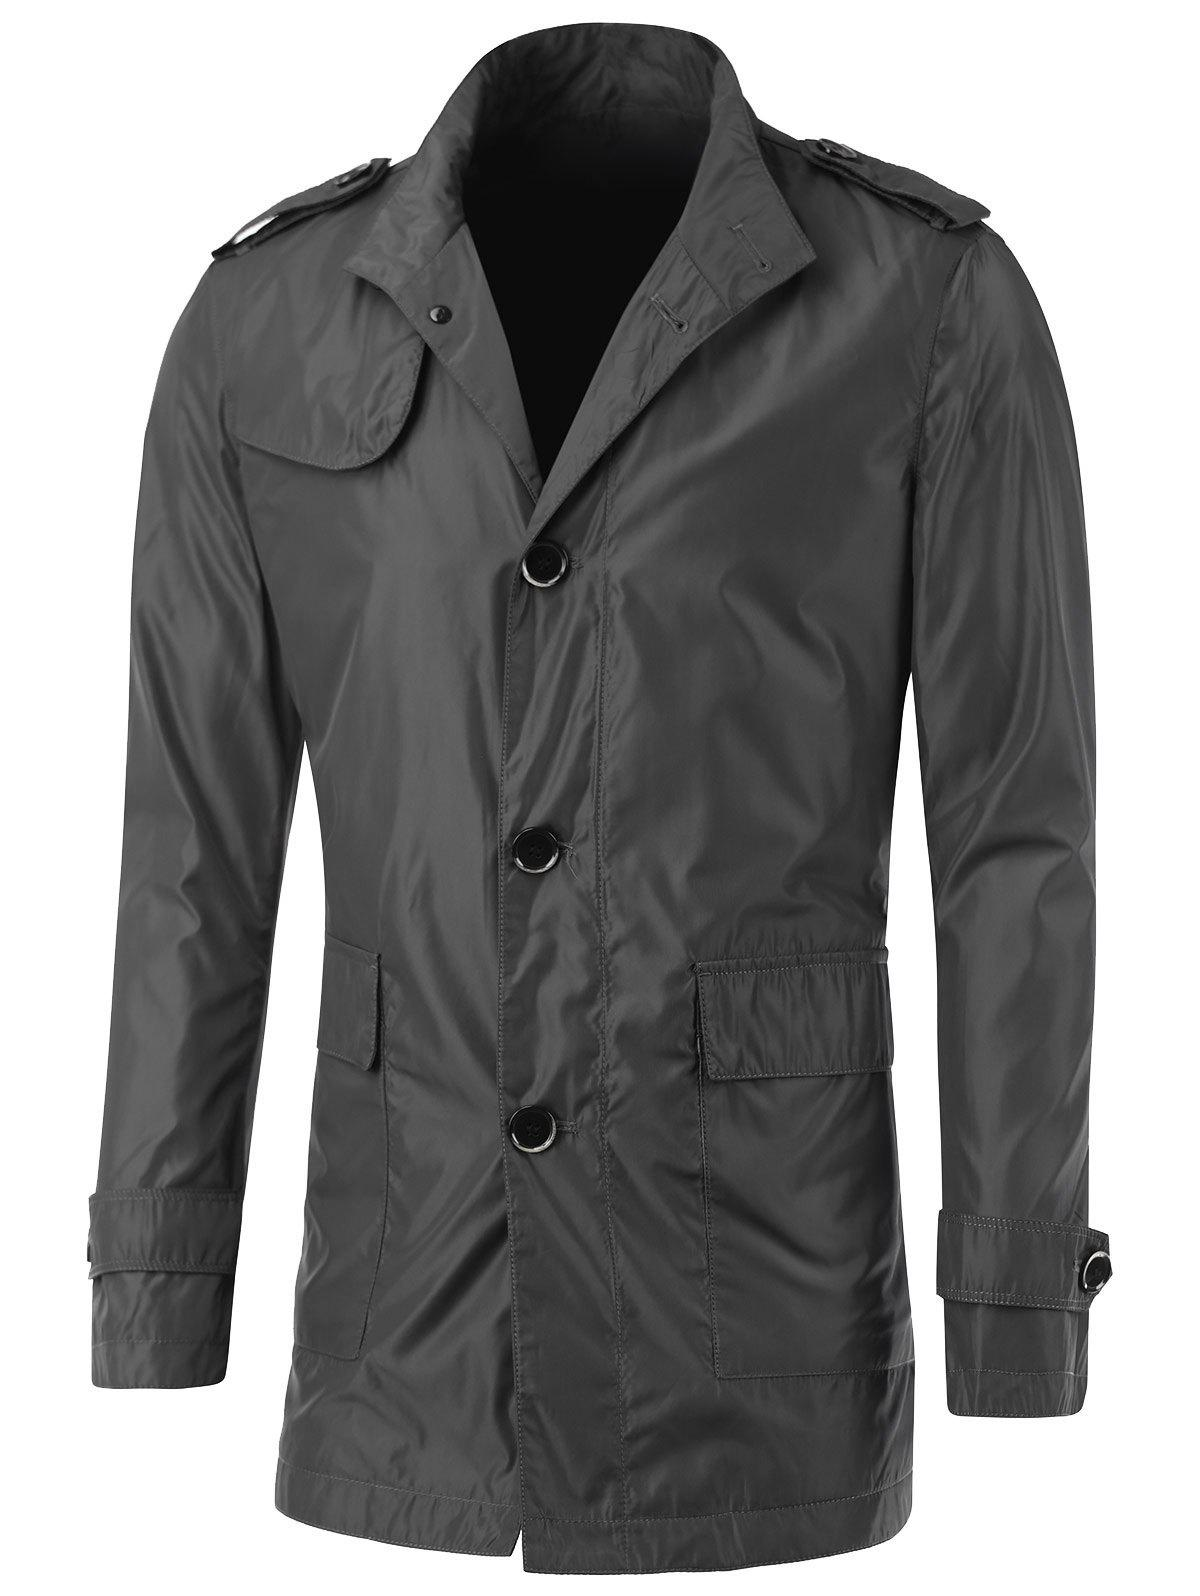 Button Up Turn-Down Collar Epaulet Design Jacket - DEEP GRAY L